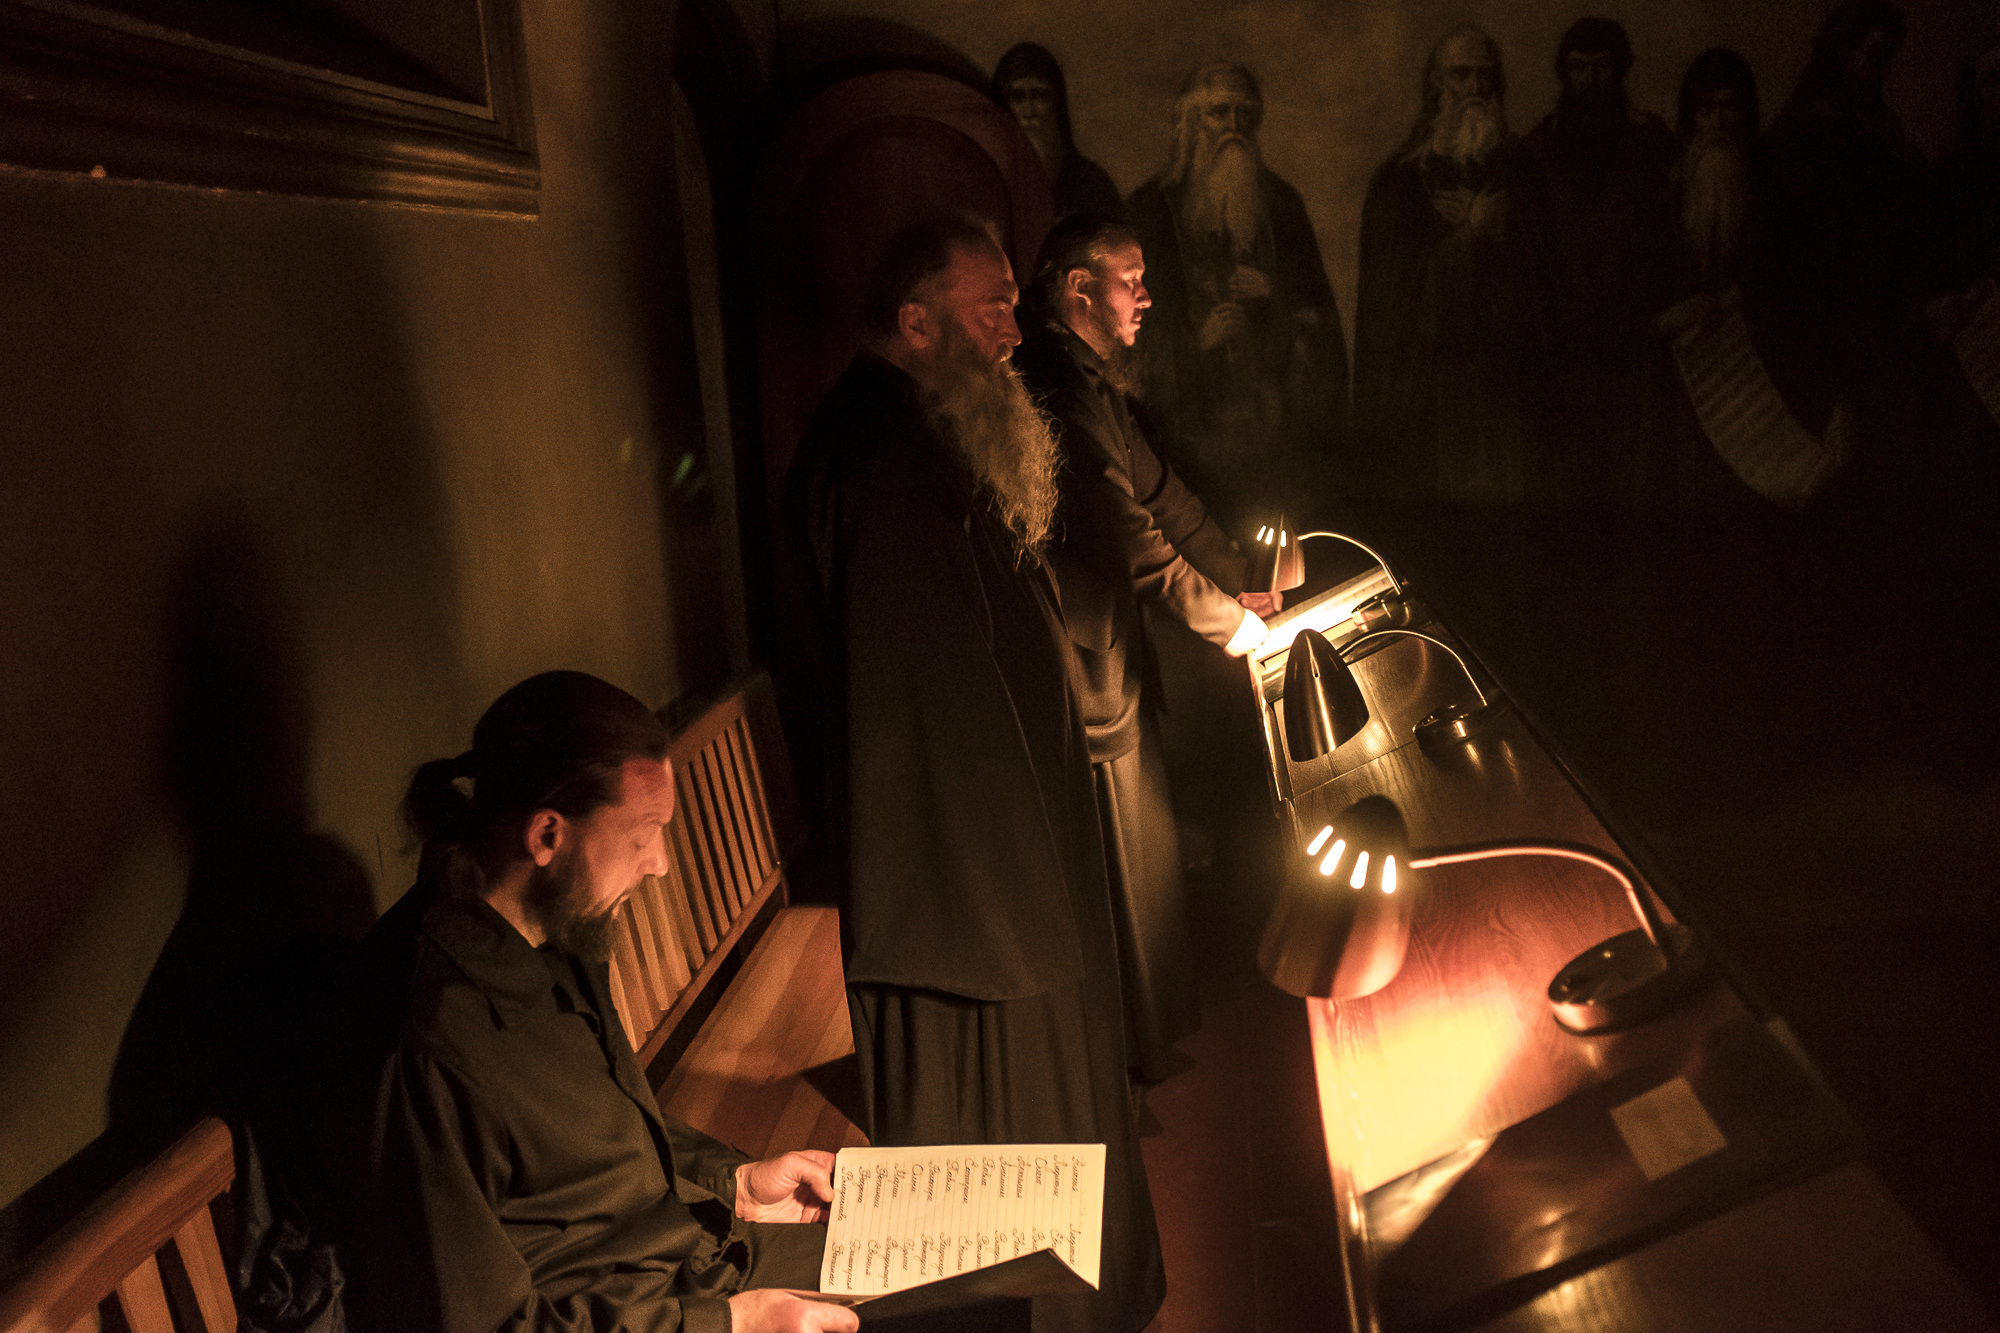 Monks pray during the Brethren service at the Church of the Exaltation of the Cross at the Kyiv-Pechersk Lavra on Saturday, October 6, 2018 in Kyiv, Ukraine.